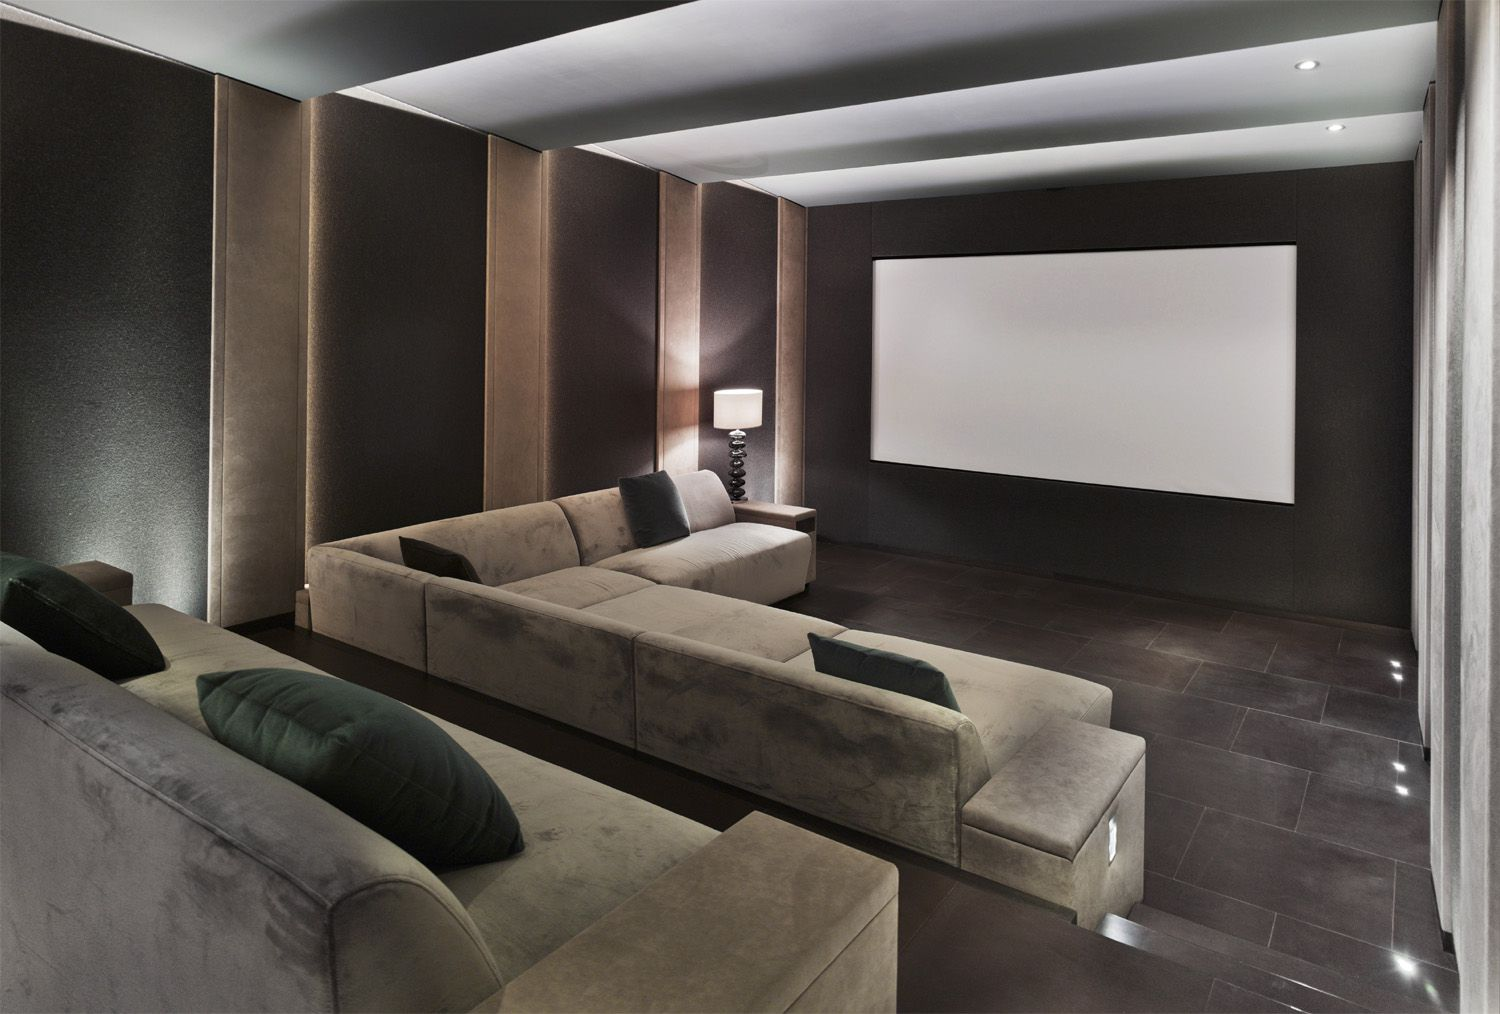 av australia home theatre design services. Black Bedroom Furniture Sets. Home Design Ideas